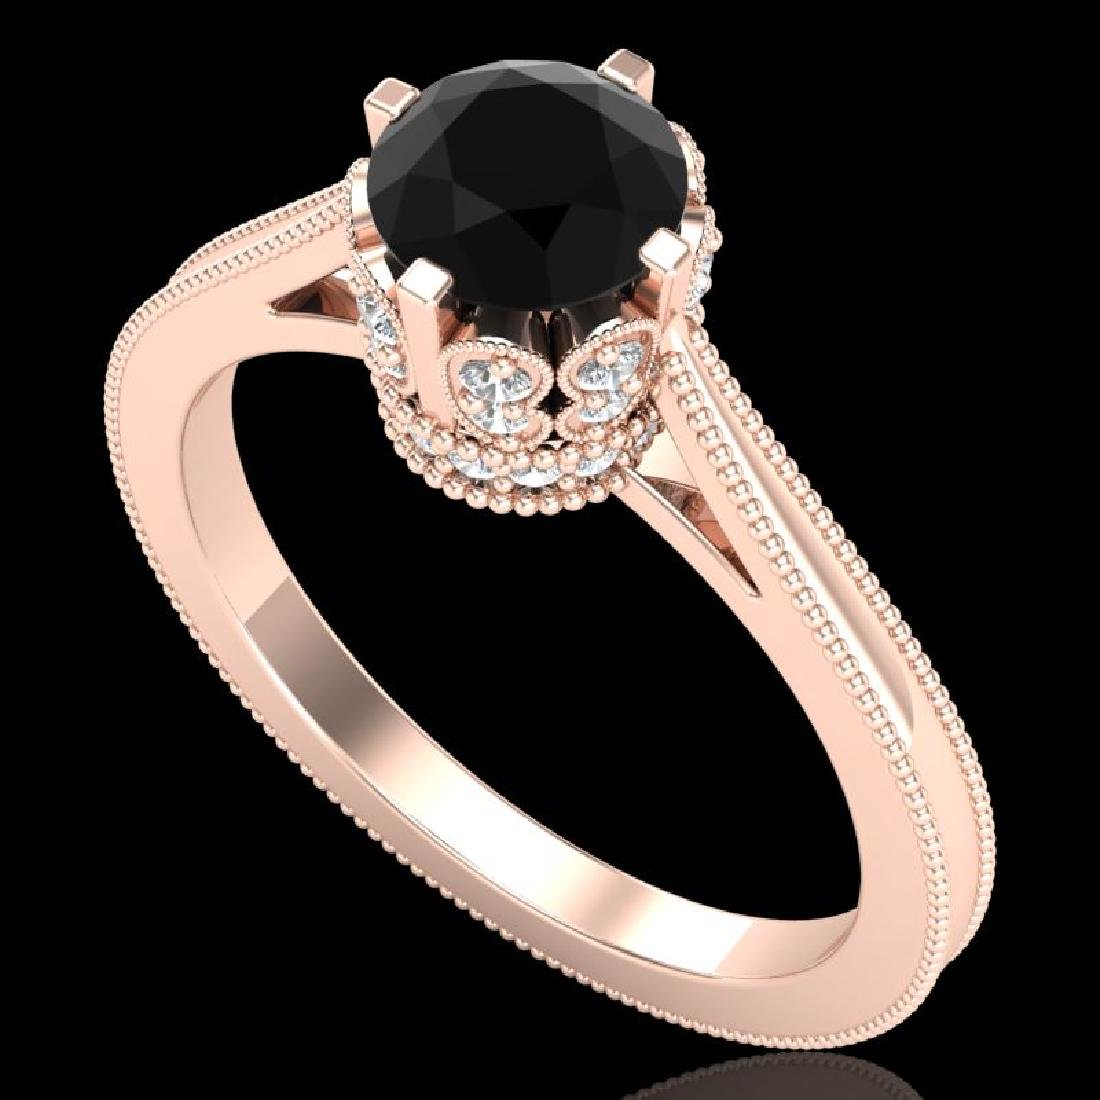 1.14 CTW Fancy Black Diamond Solitaire Engagement Art